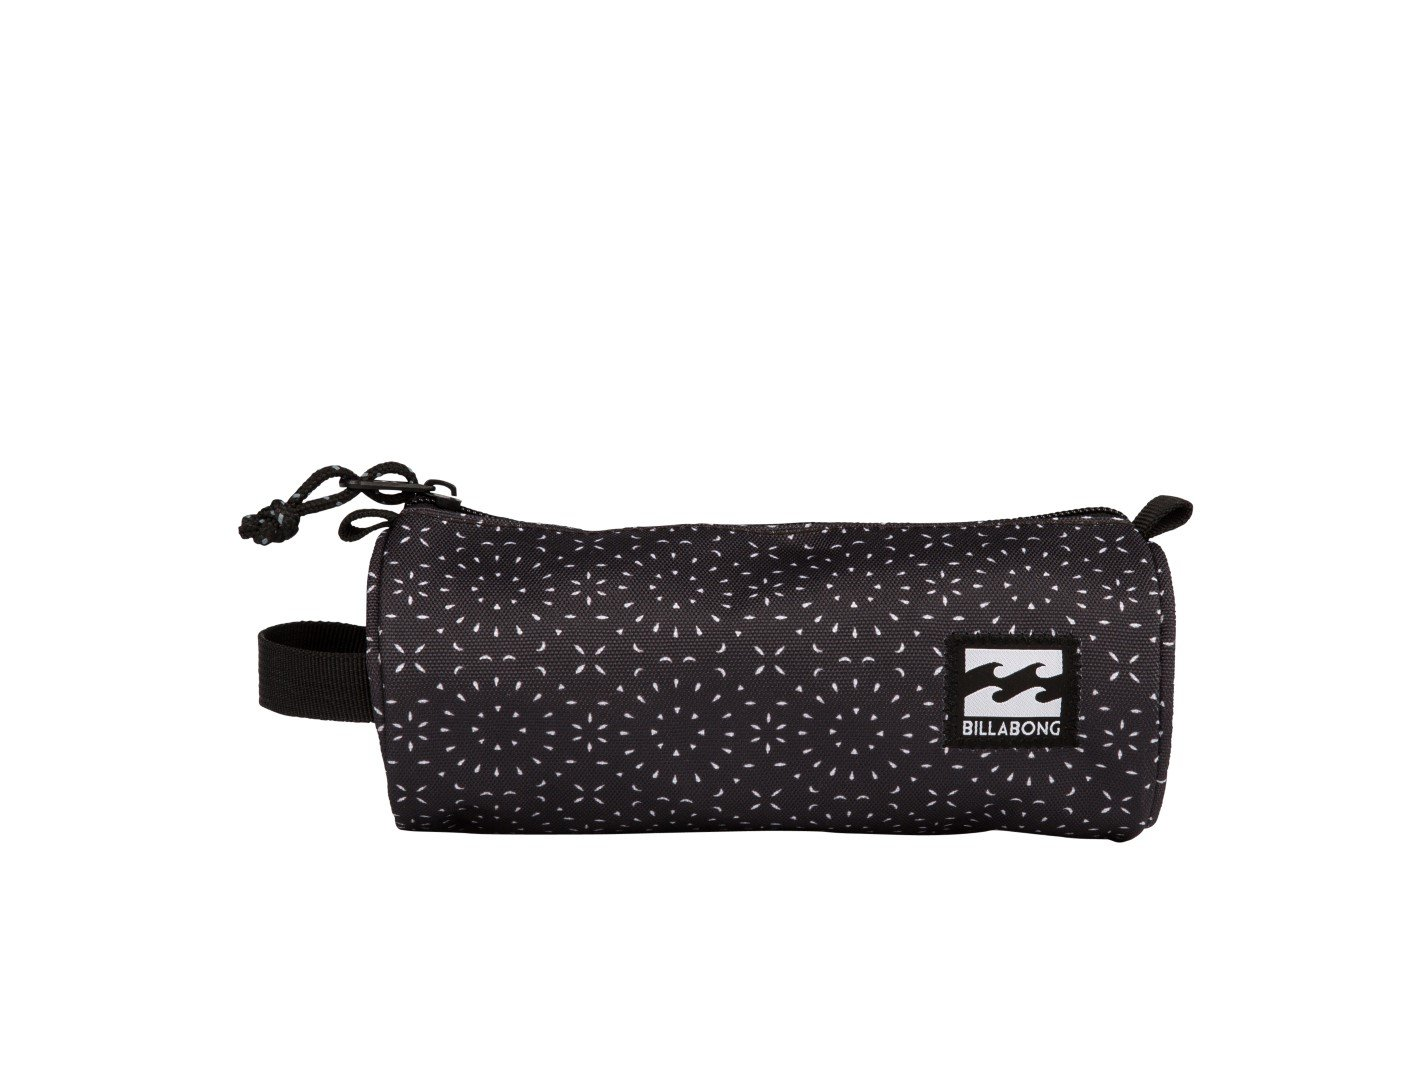 Billabong Barrel Pencil Case Black U: Amazon.es: Deportes y ...